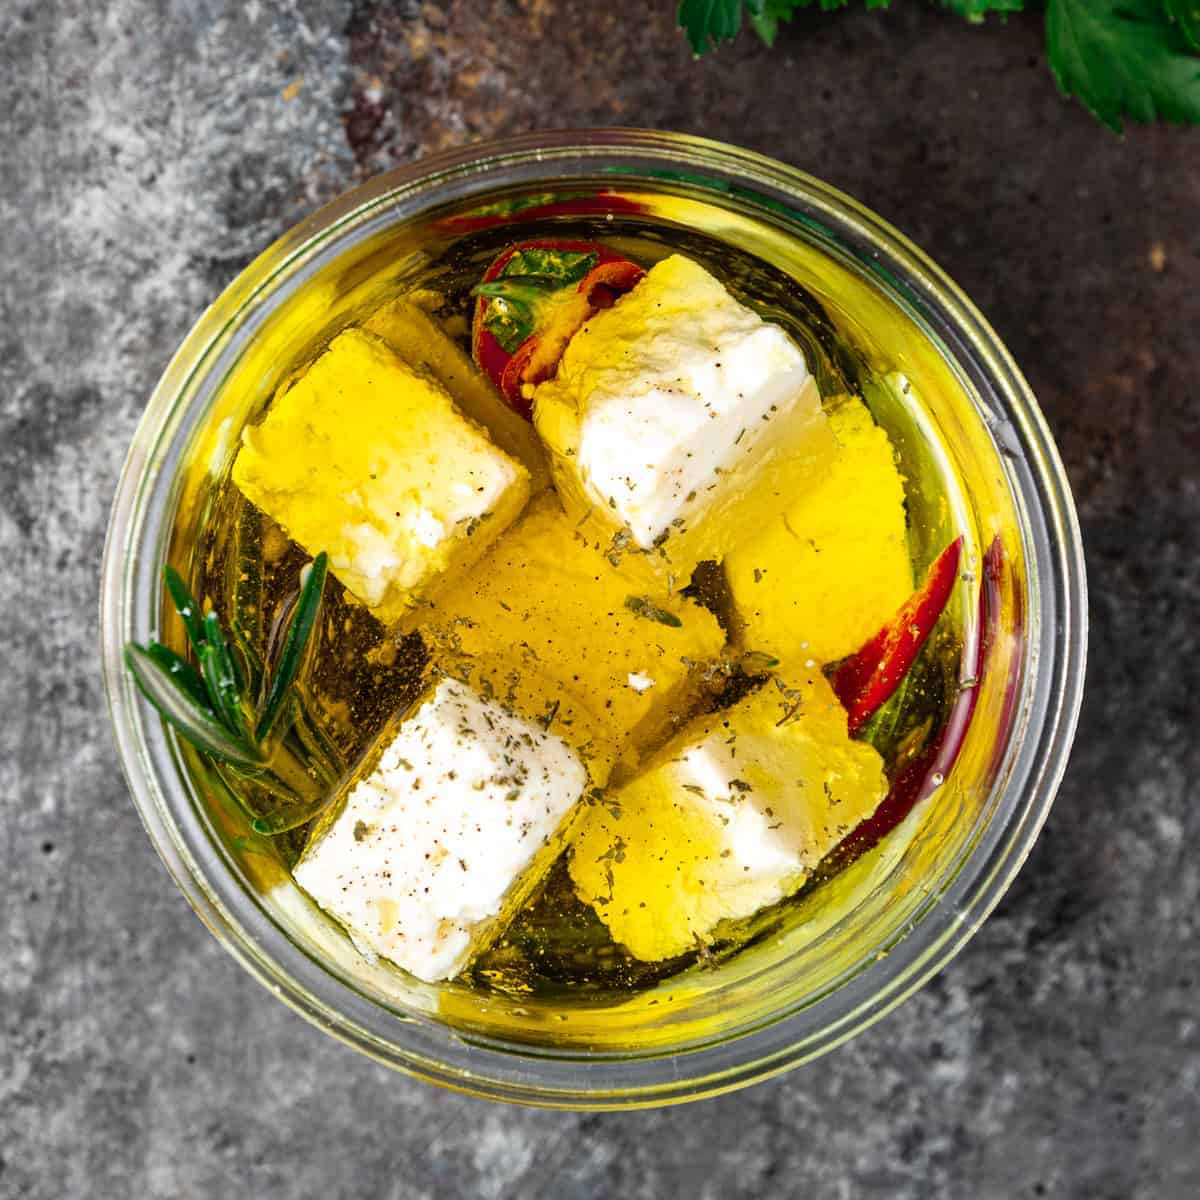 close up image: feta cheese appetizer in glass jar